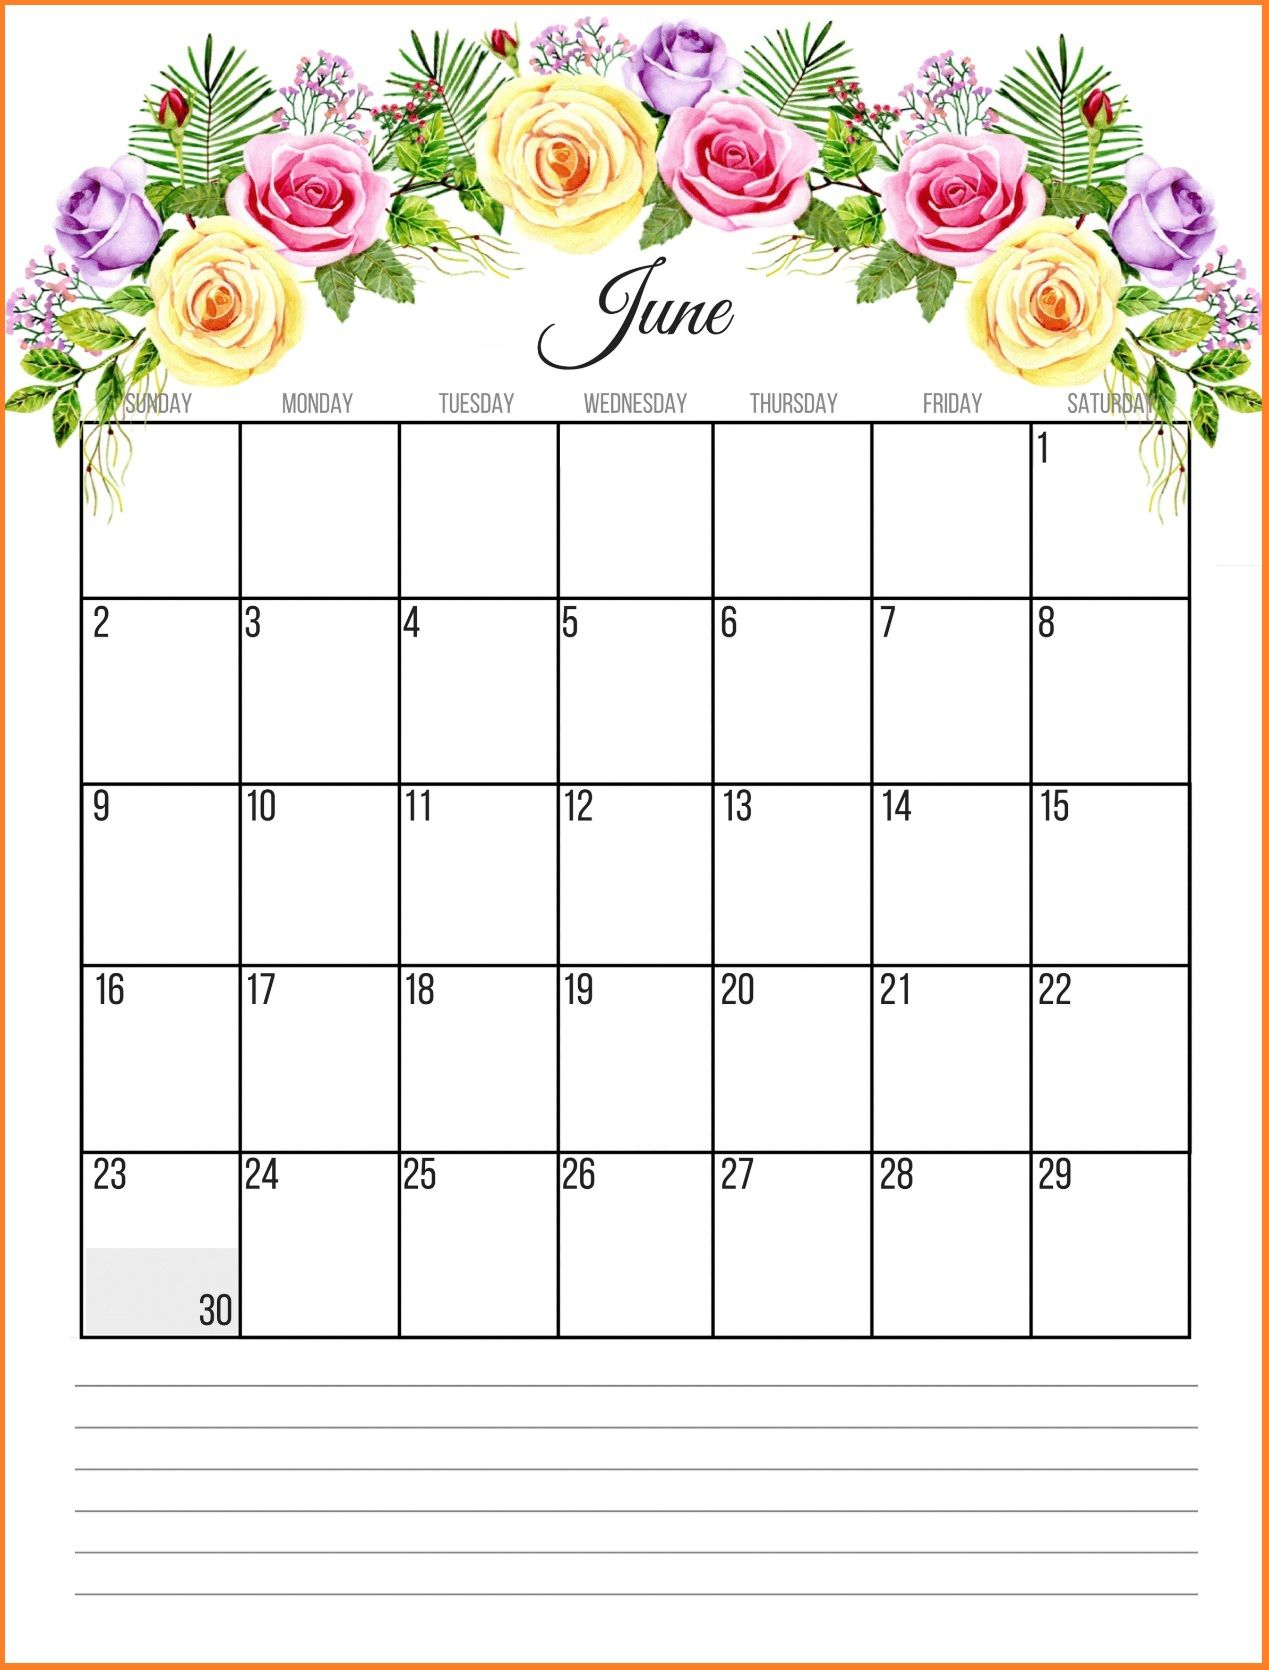 Floral June 2019 Wall Calendar Designs